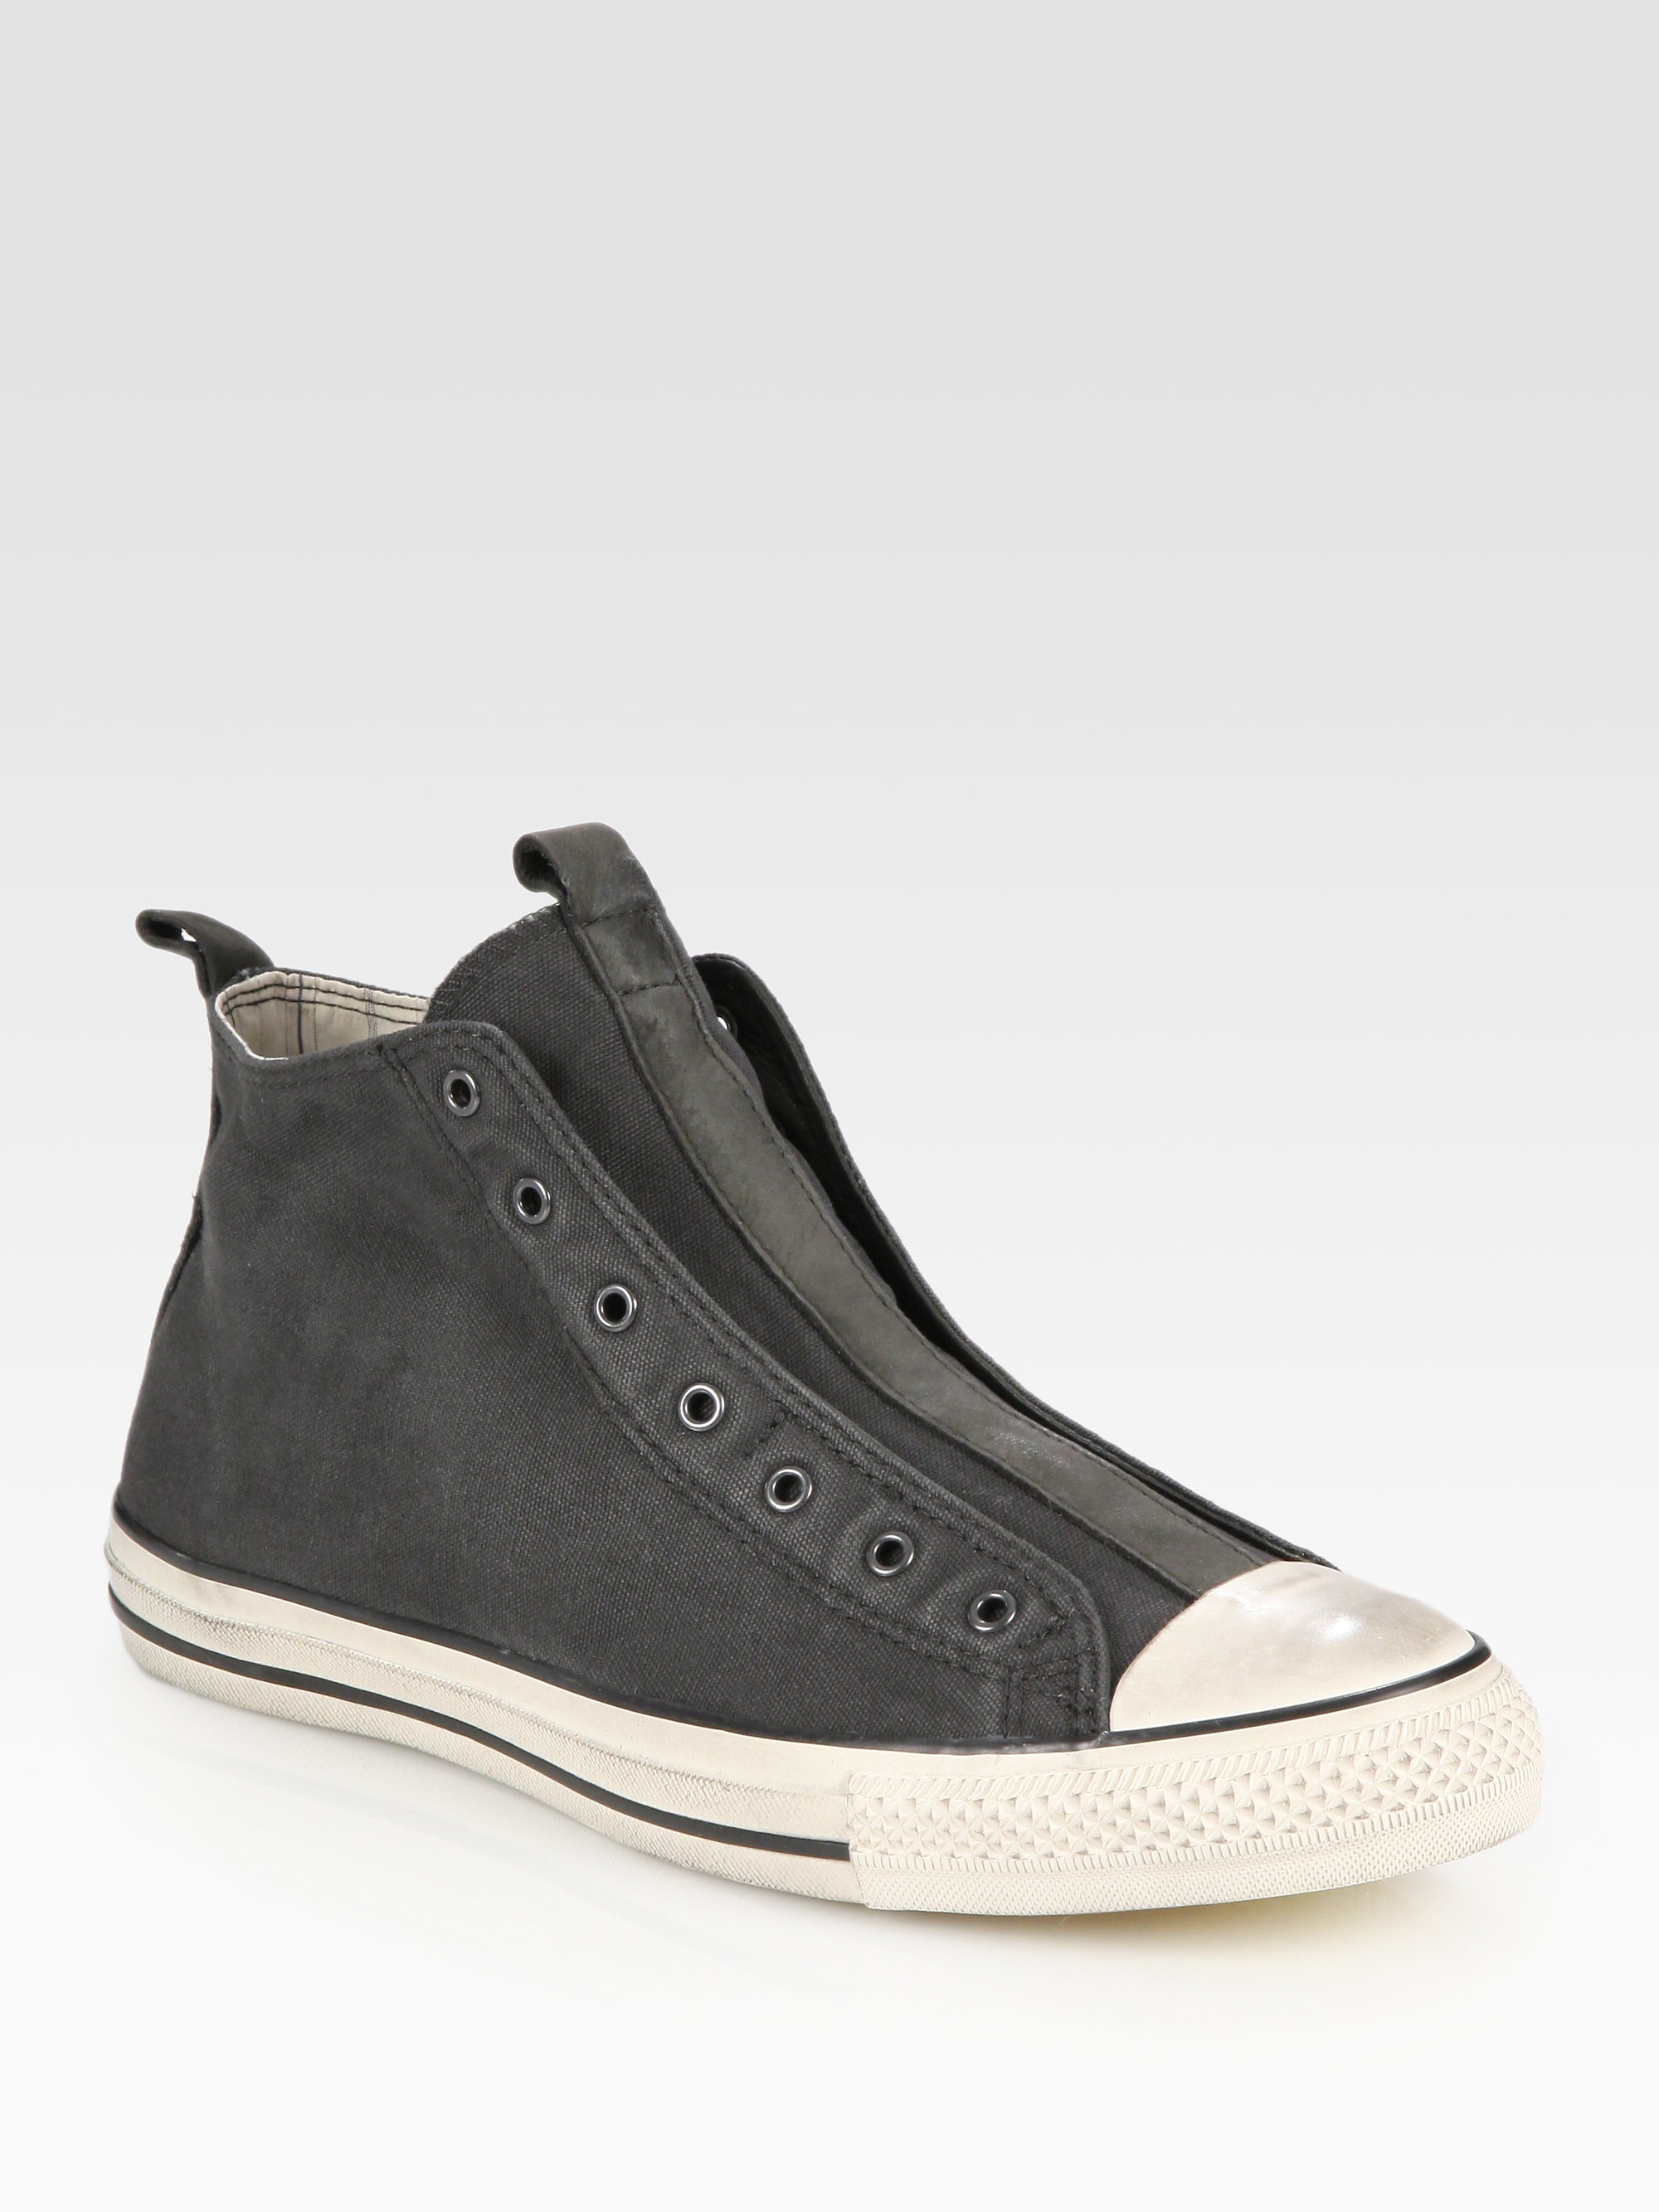 08516d982600 Lyst - Converse John Varvatos Laceless Canvas Hightop Sneakers in Gray for  Men